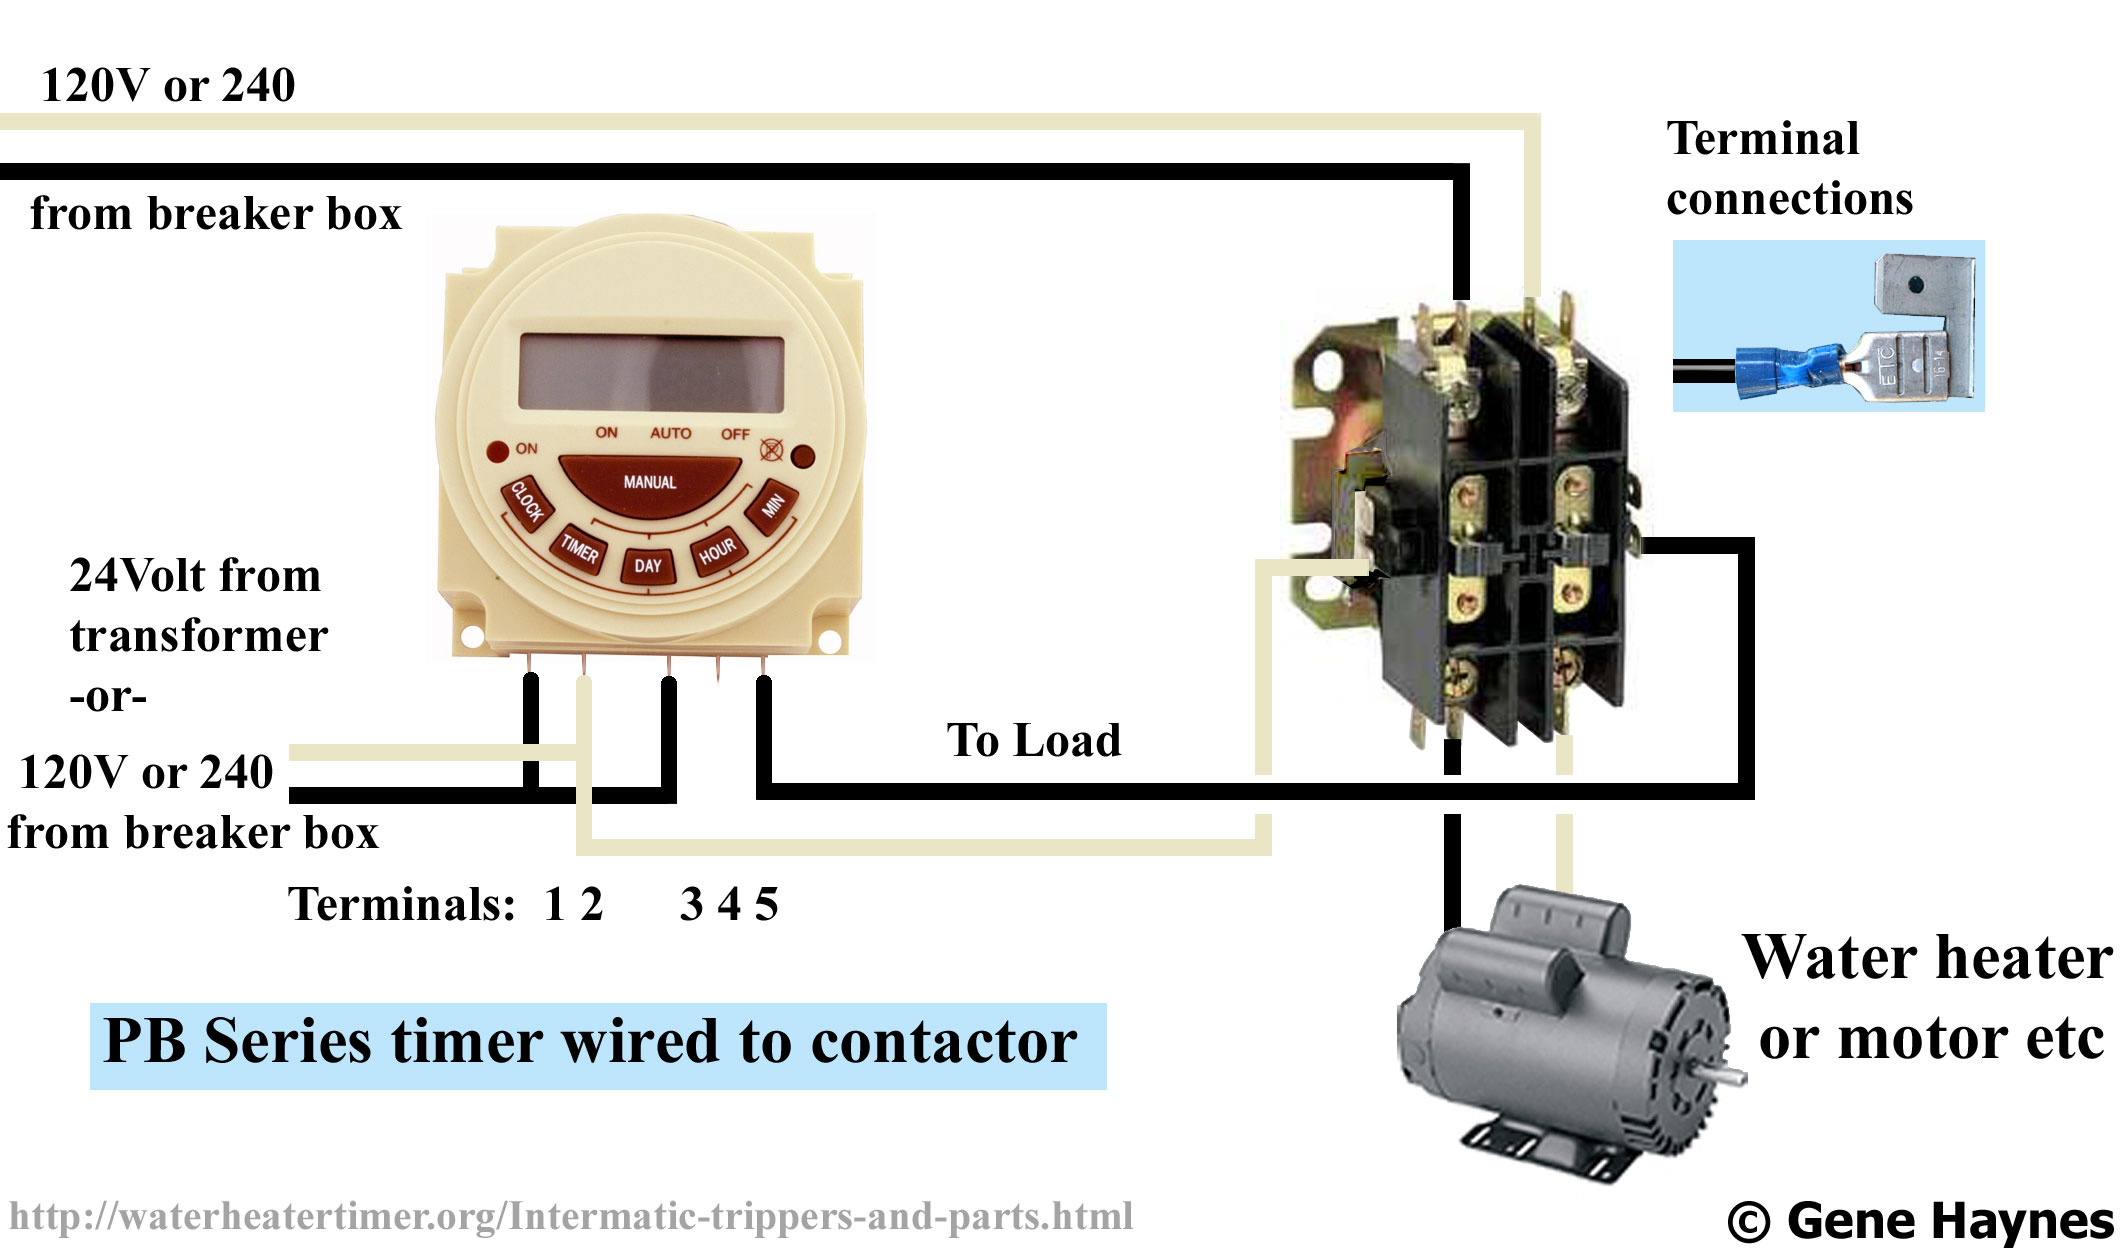 PB 300 series timer wiring motor large contactors timer contactor wiring diagram at metegol.co